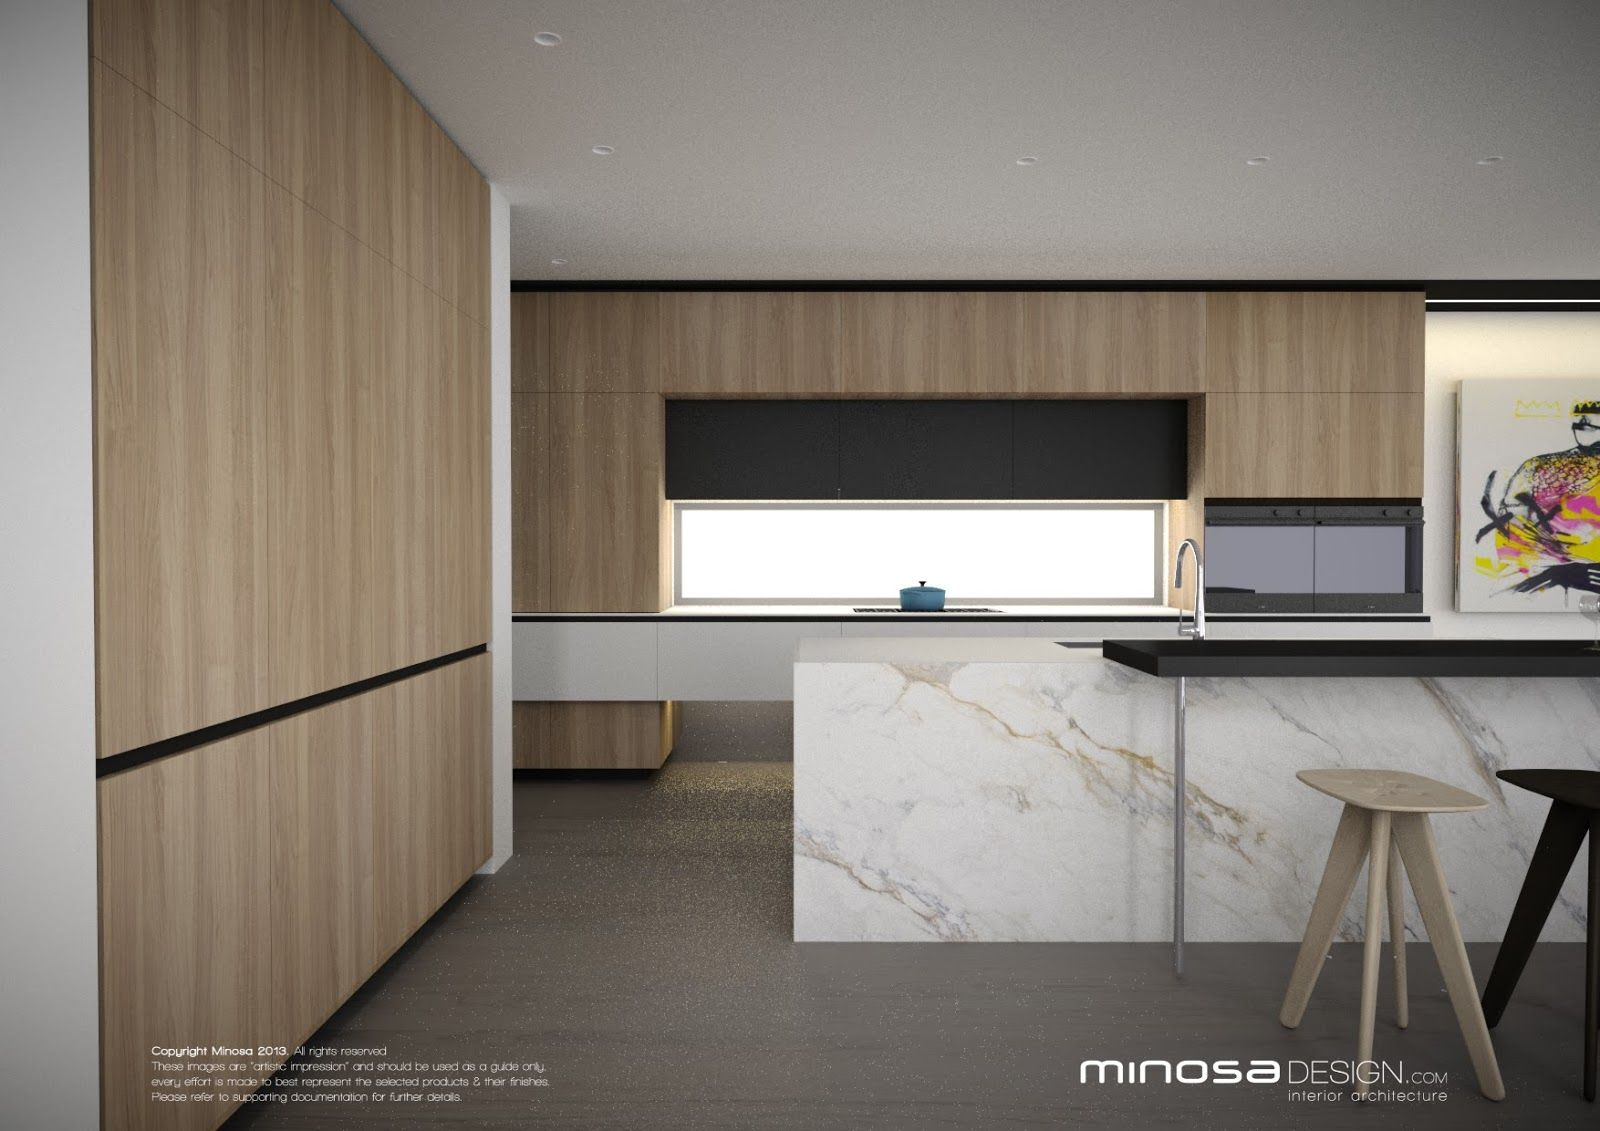 Minosa-kitchen-design-scullery-laundry-connected-spaces-design-ideas ...